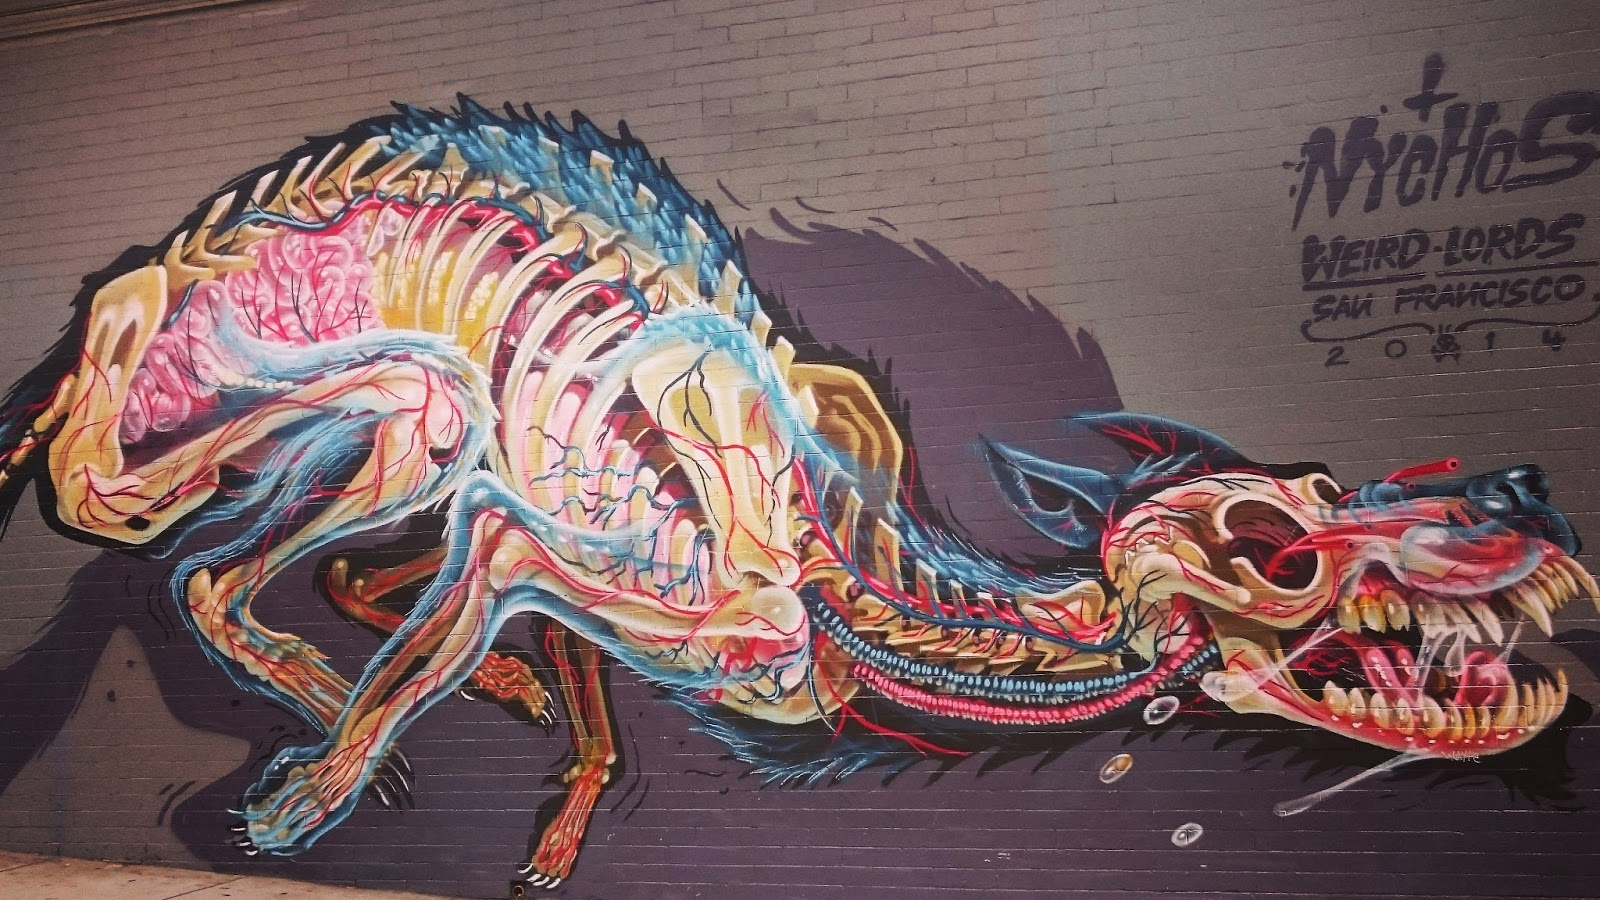 Colourful Dog skeleton graffiti art Haight Ashbury San Francisco